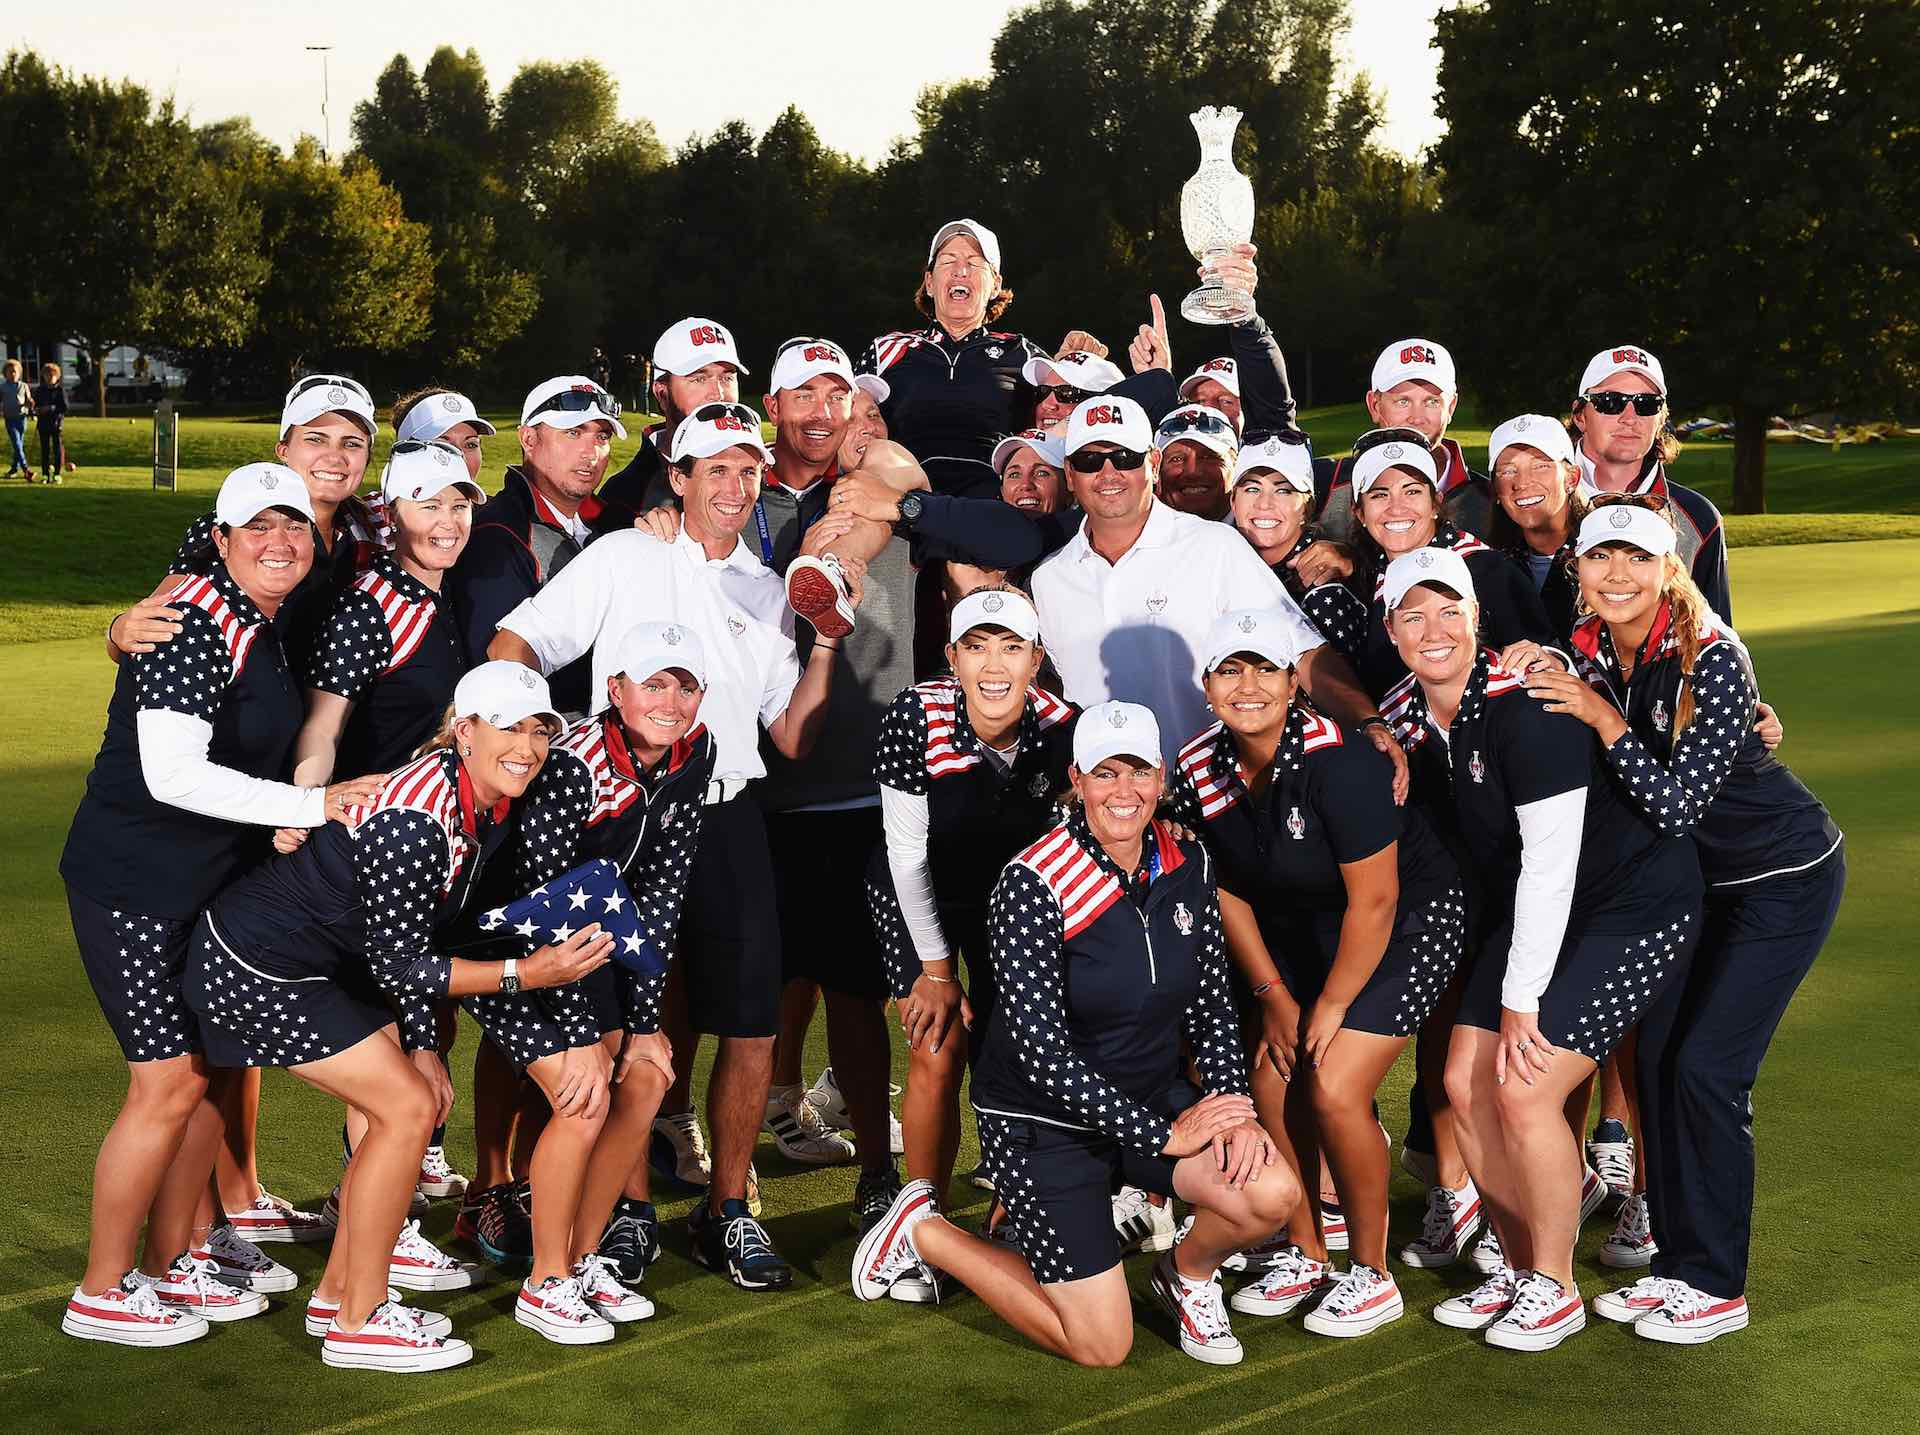 Julie Inkster to Remain as Solheim Cup Captain